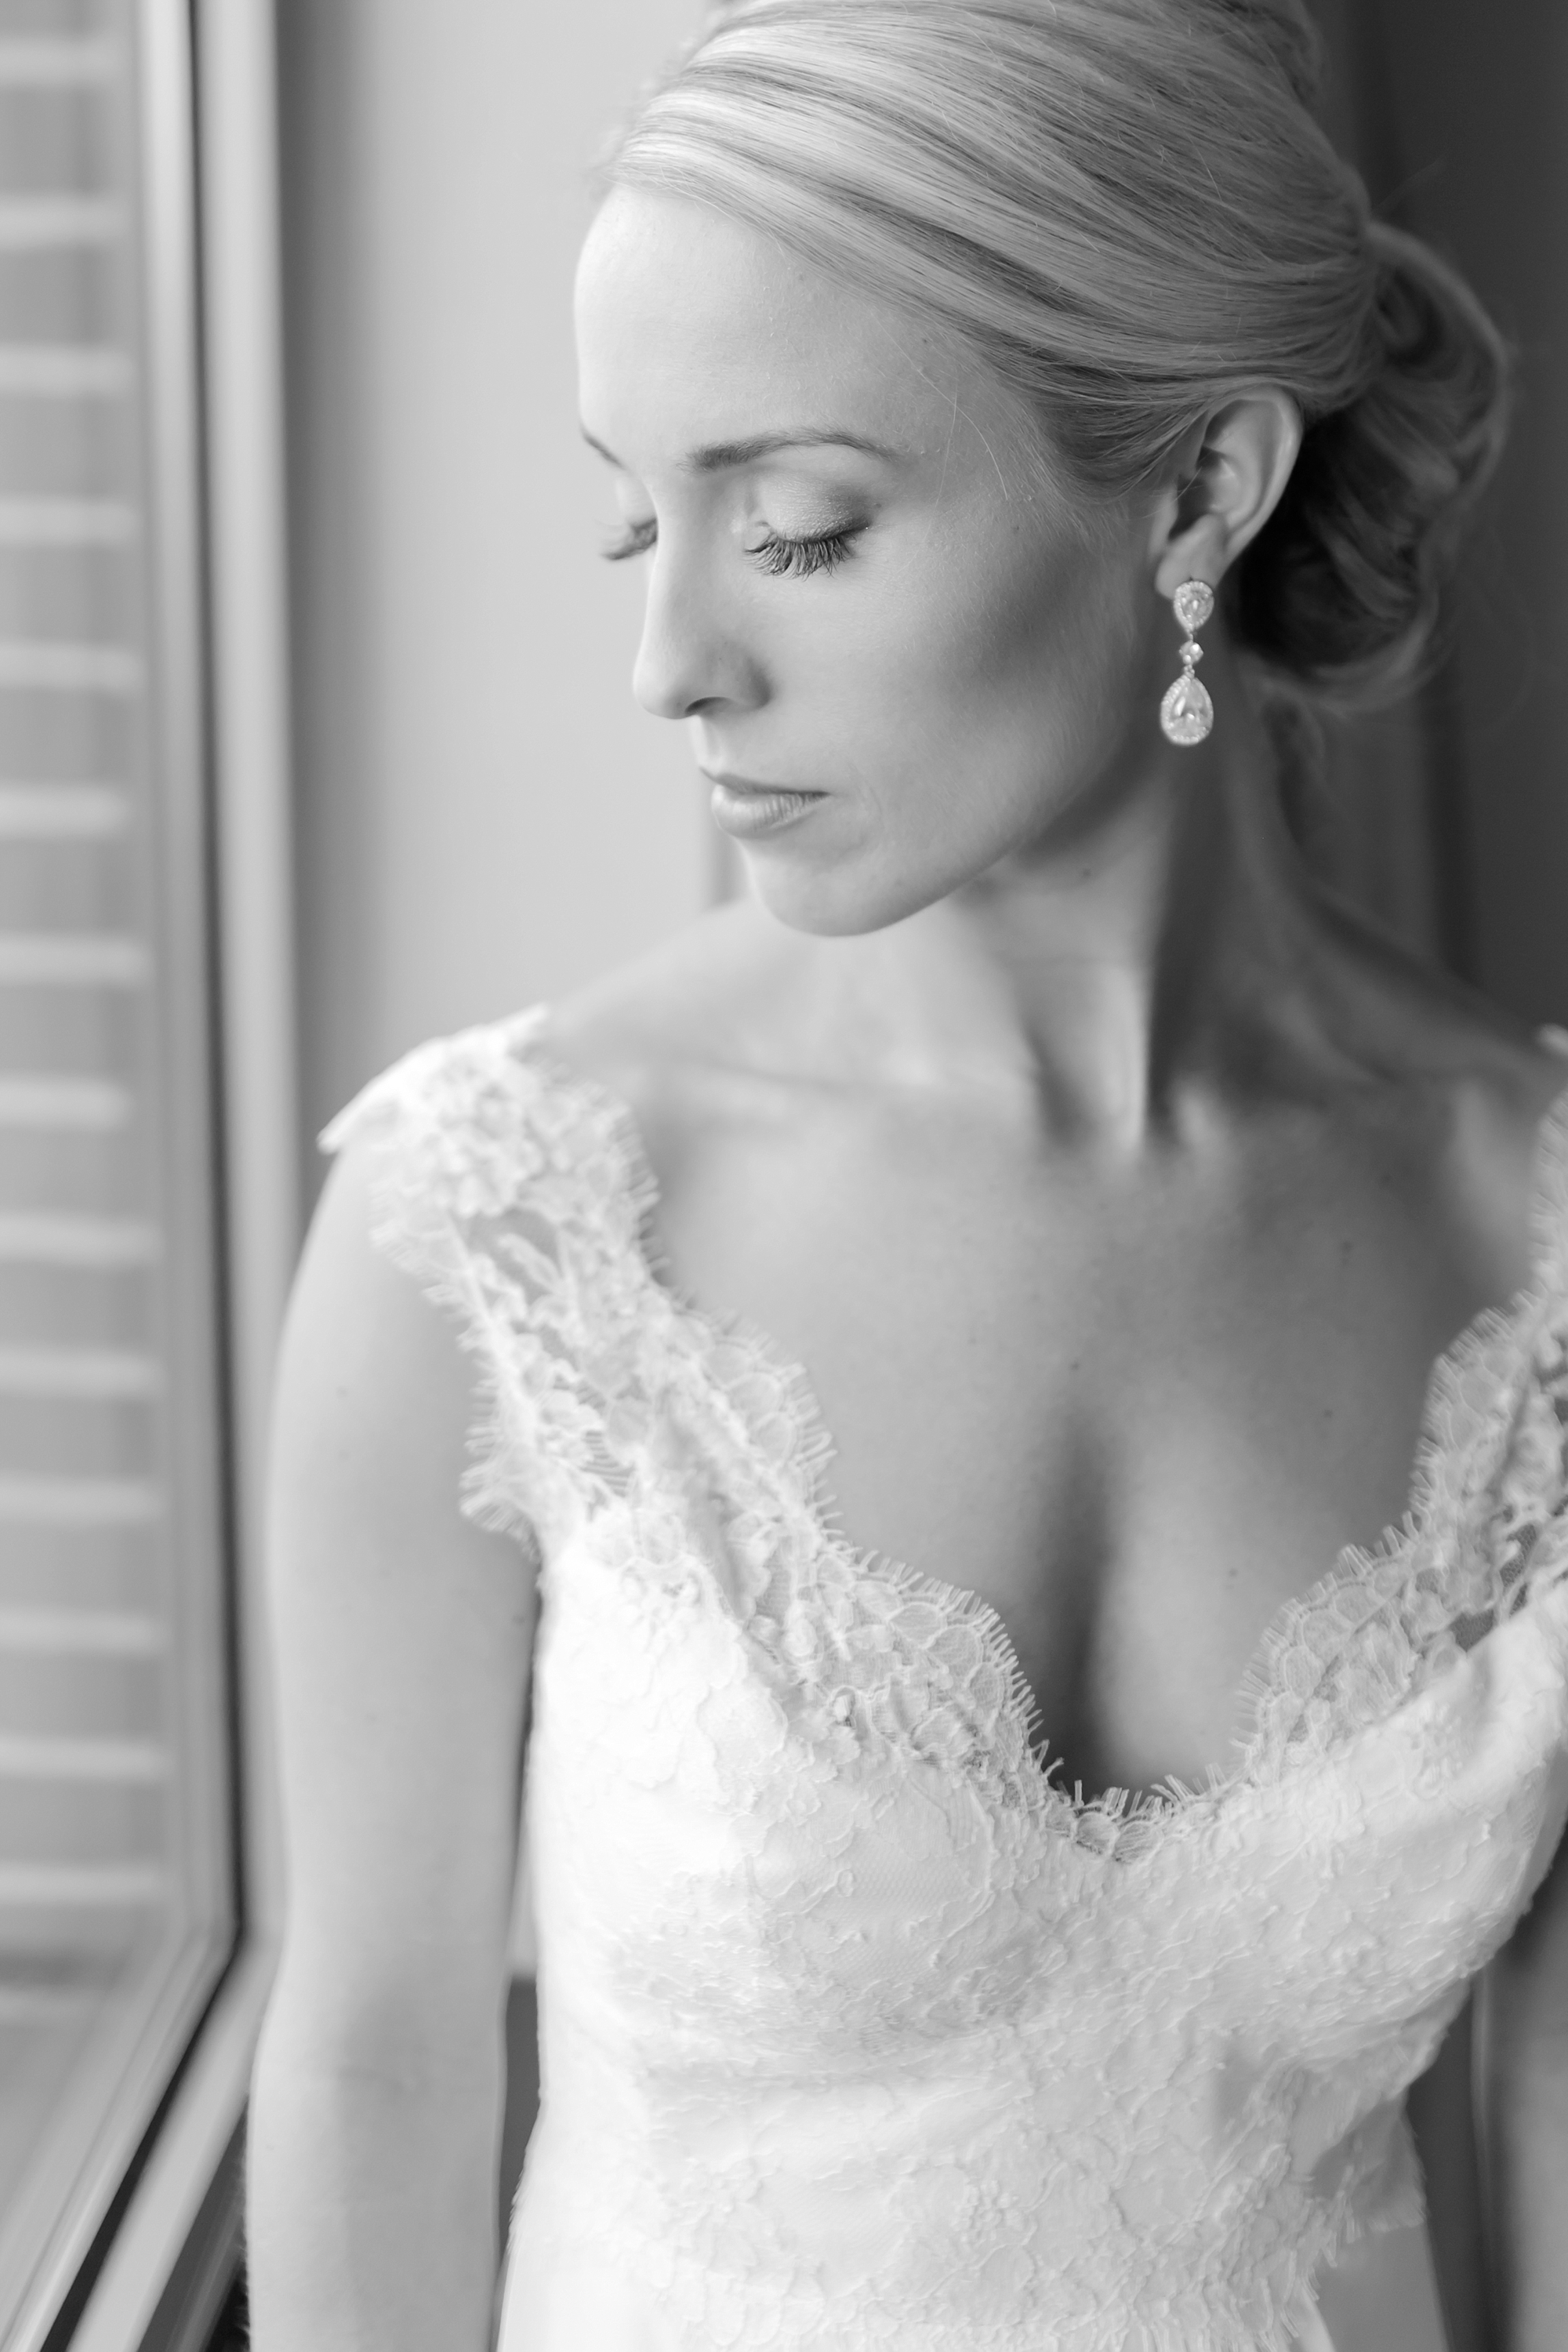 McAnelly 1. Getting Ready-103_anna grace photography georgetown virginia wedding photographer ritz carlton wedding photo.jpg